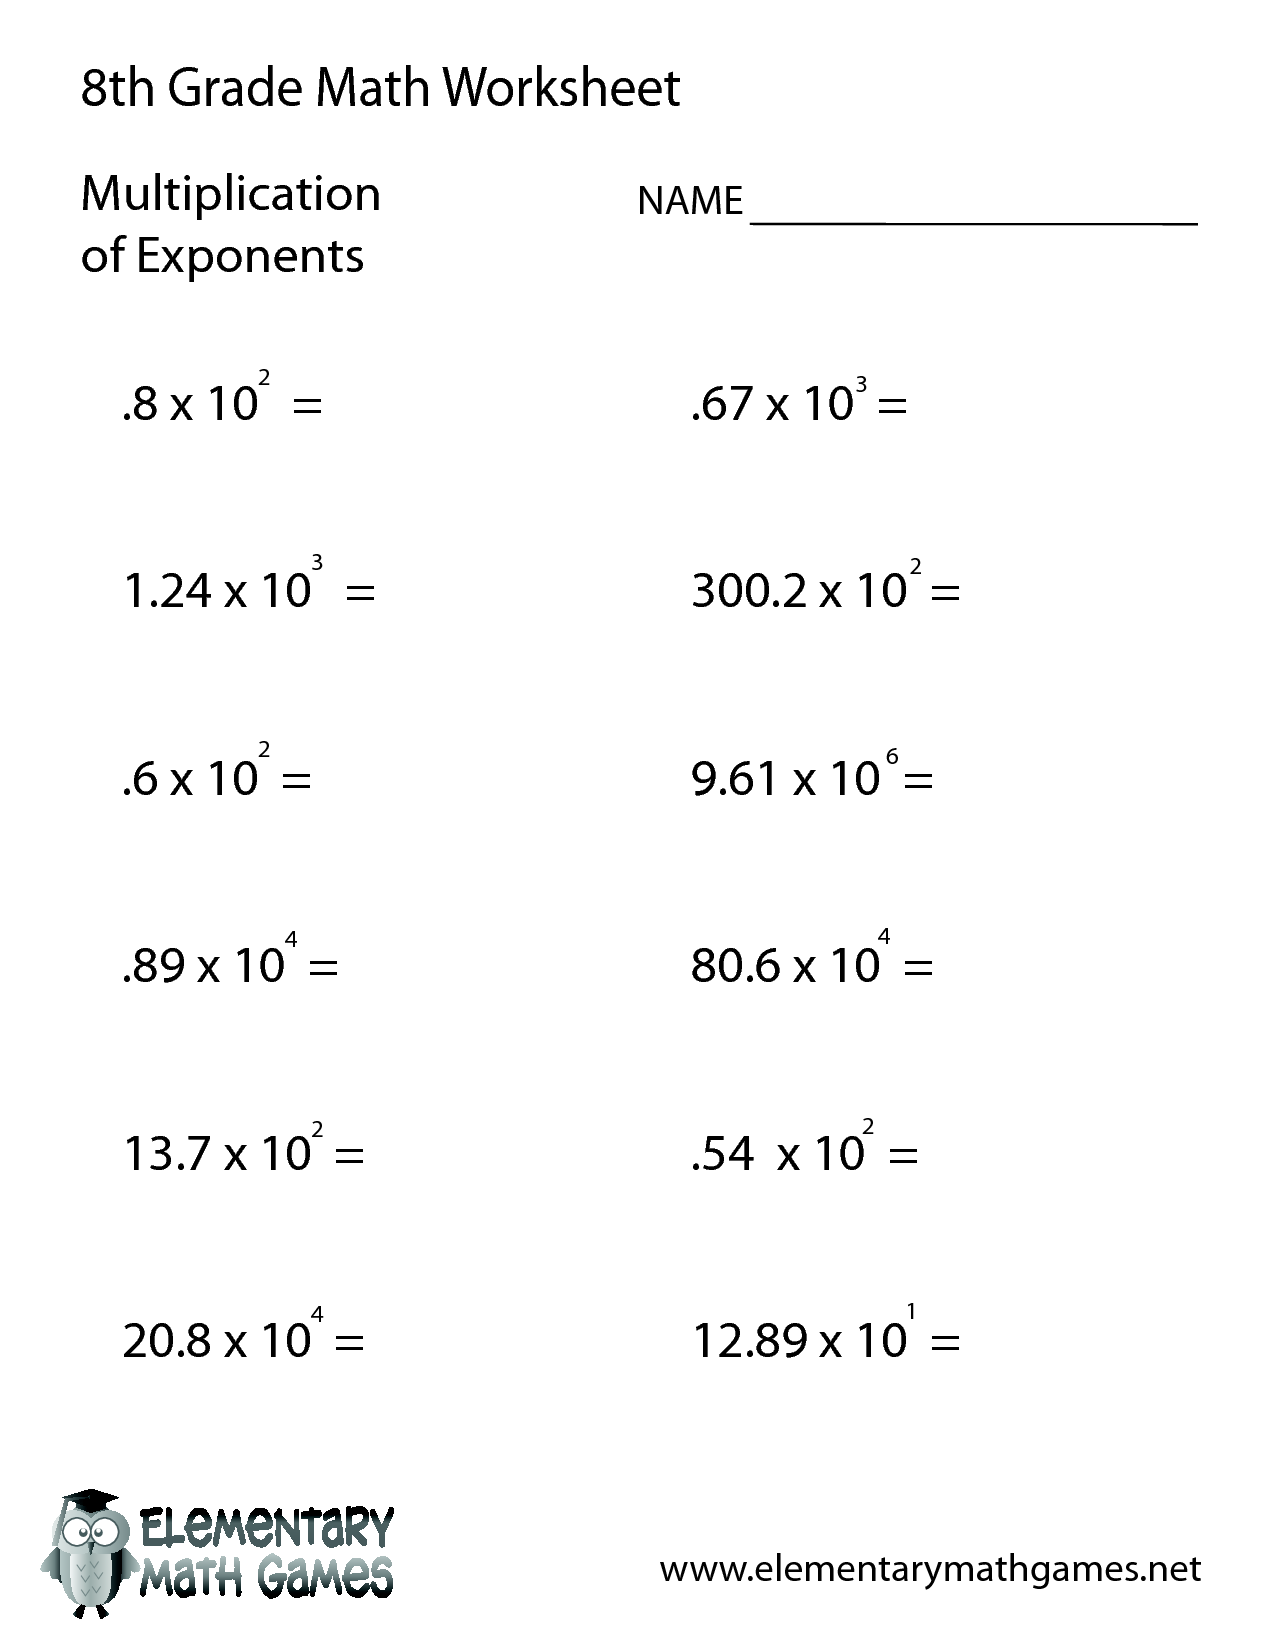 Evaluating Algebraic Expressions Worksheets – Evaluate Algebraic Expressions Worksheet